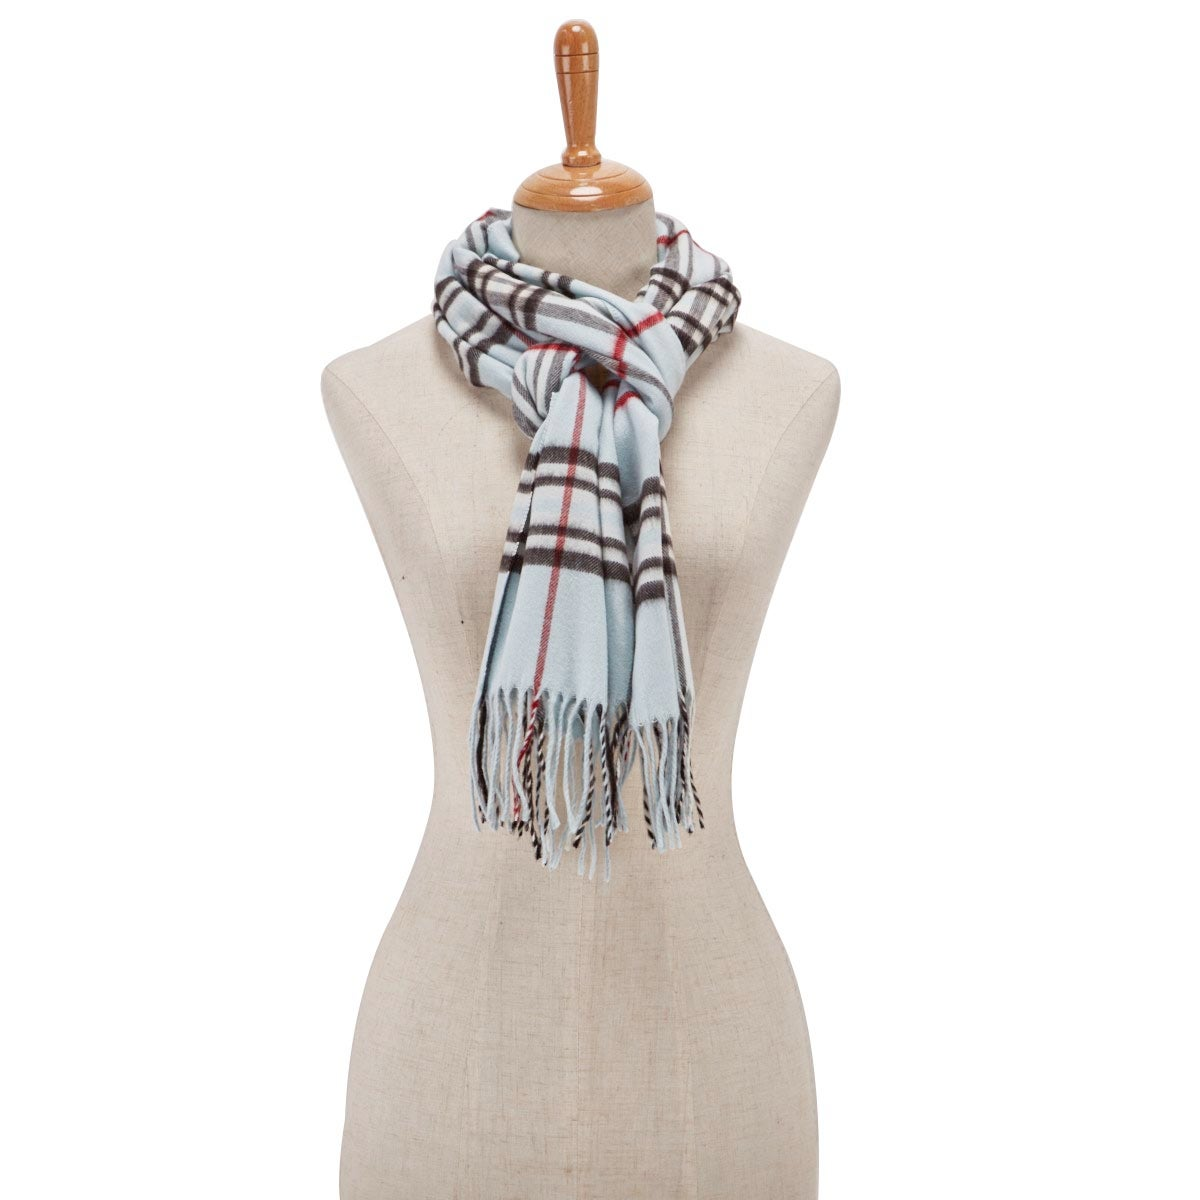 Lds Fraas Plaid light blue scarf